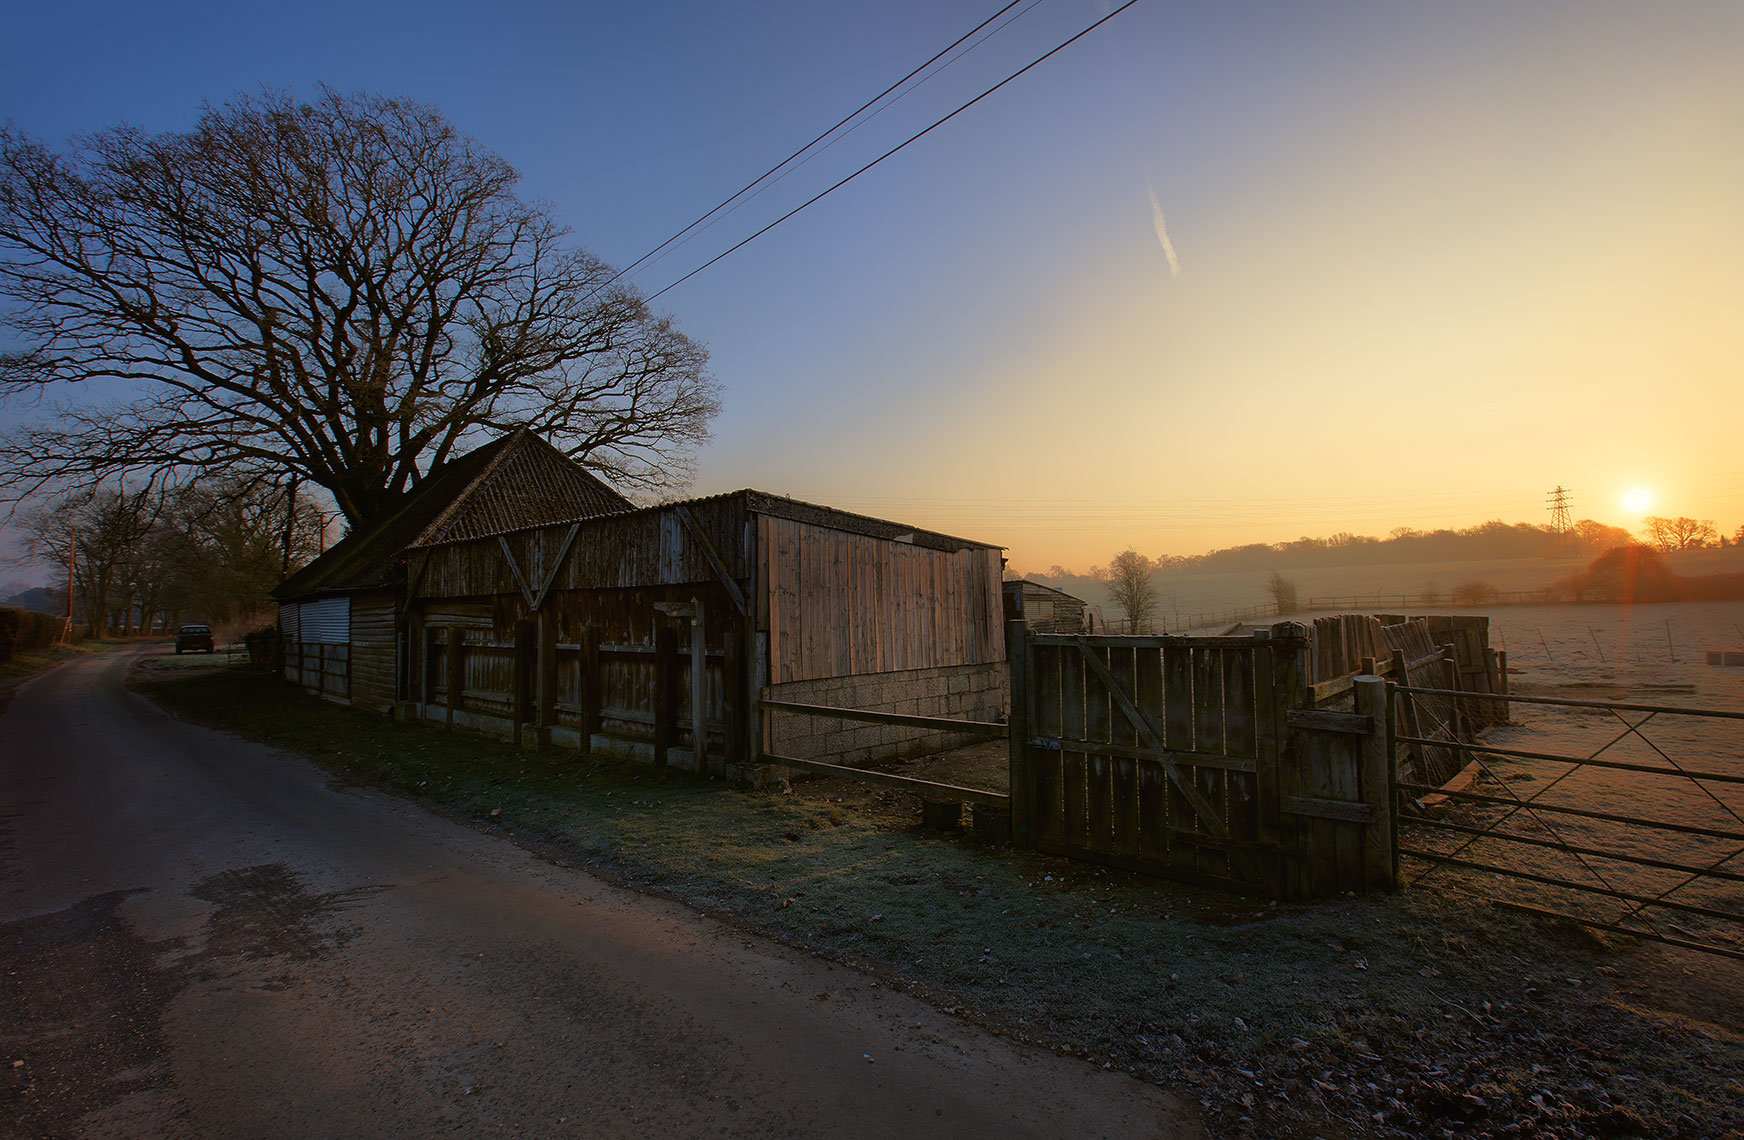 Sun rising over the hills of a countryside farm and barn in Hampshire, UK